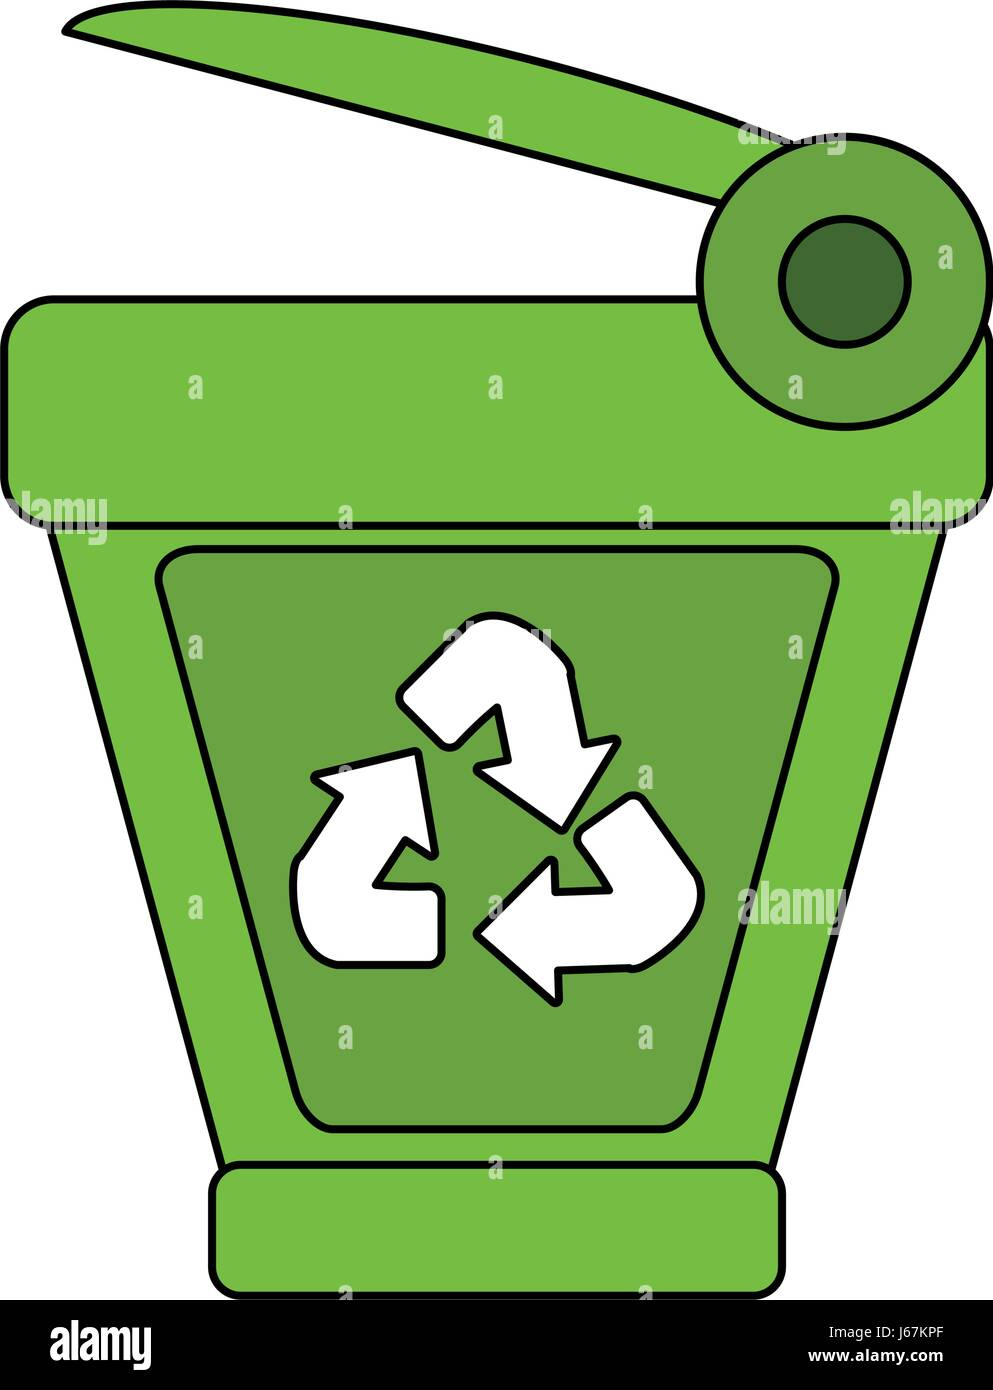 Cartoon recycling symbol stock photos cartoon recycling symbol color image cartoon trash can with recycling symbol stock image biocorpaavc